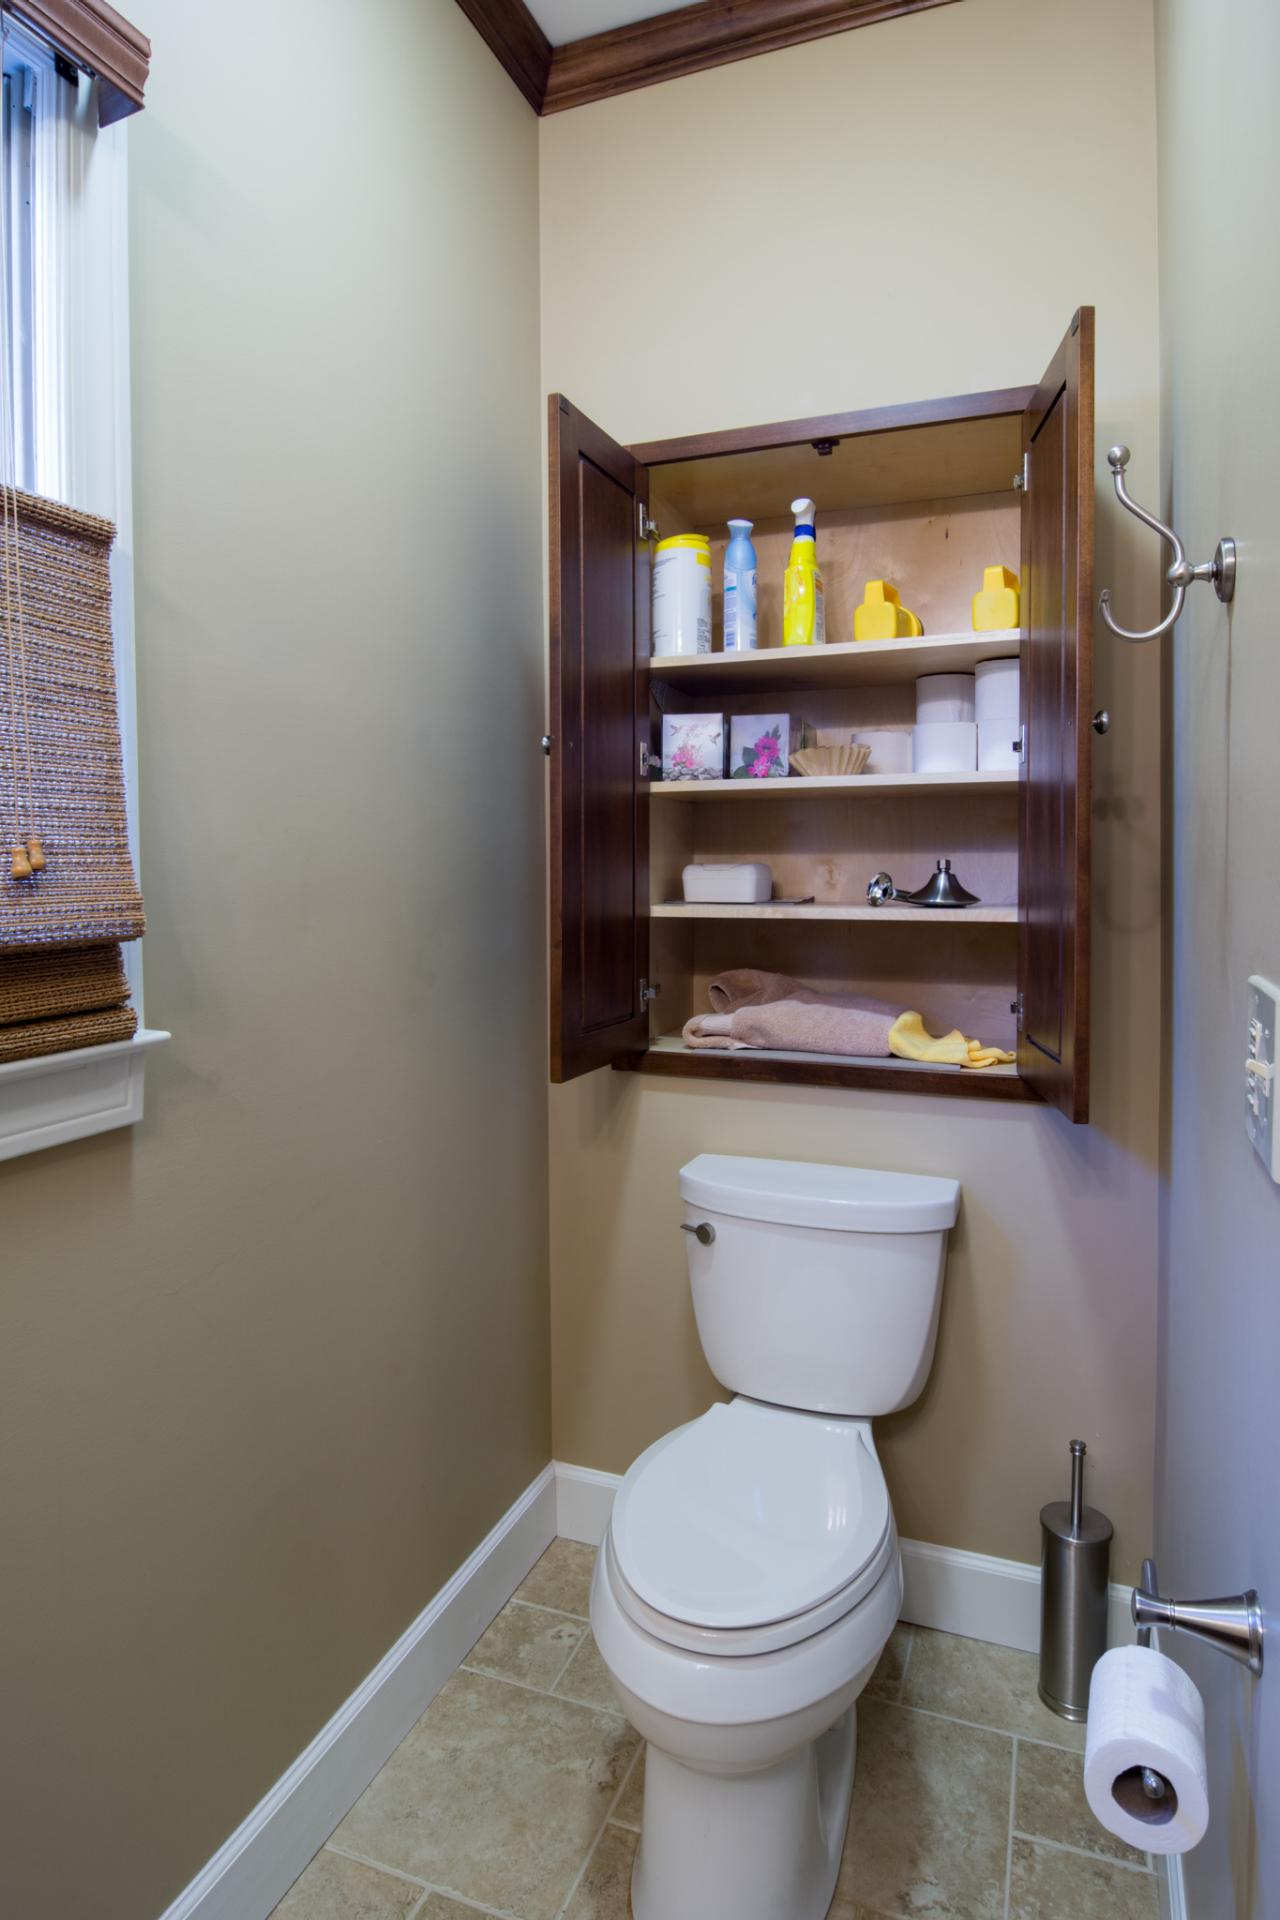 Small space bathroom storage ideas diy network blog Kitchen storage cabinets for small spaces